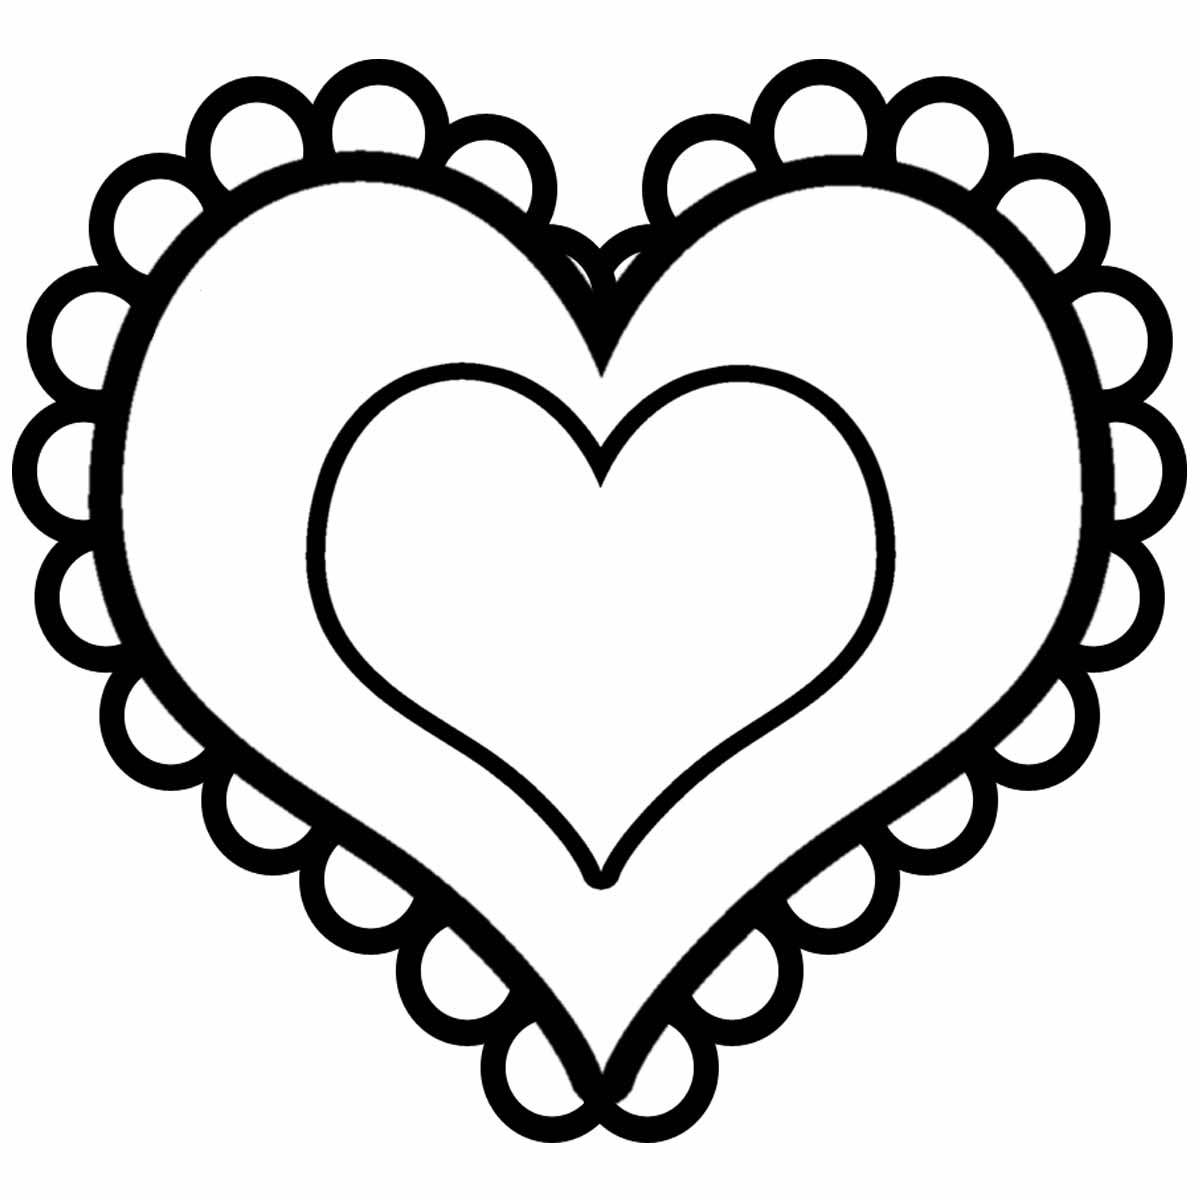 Valentine S Day Heart With Lace Clip Art In Black And White  This